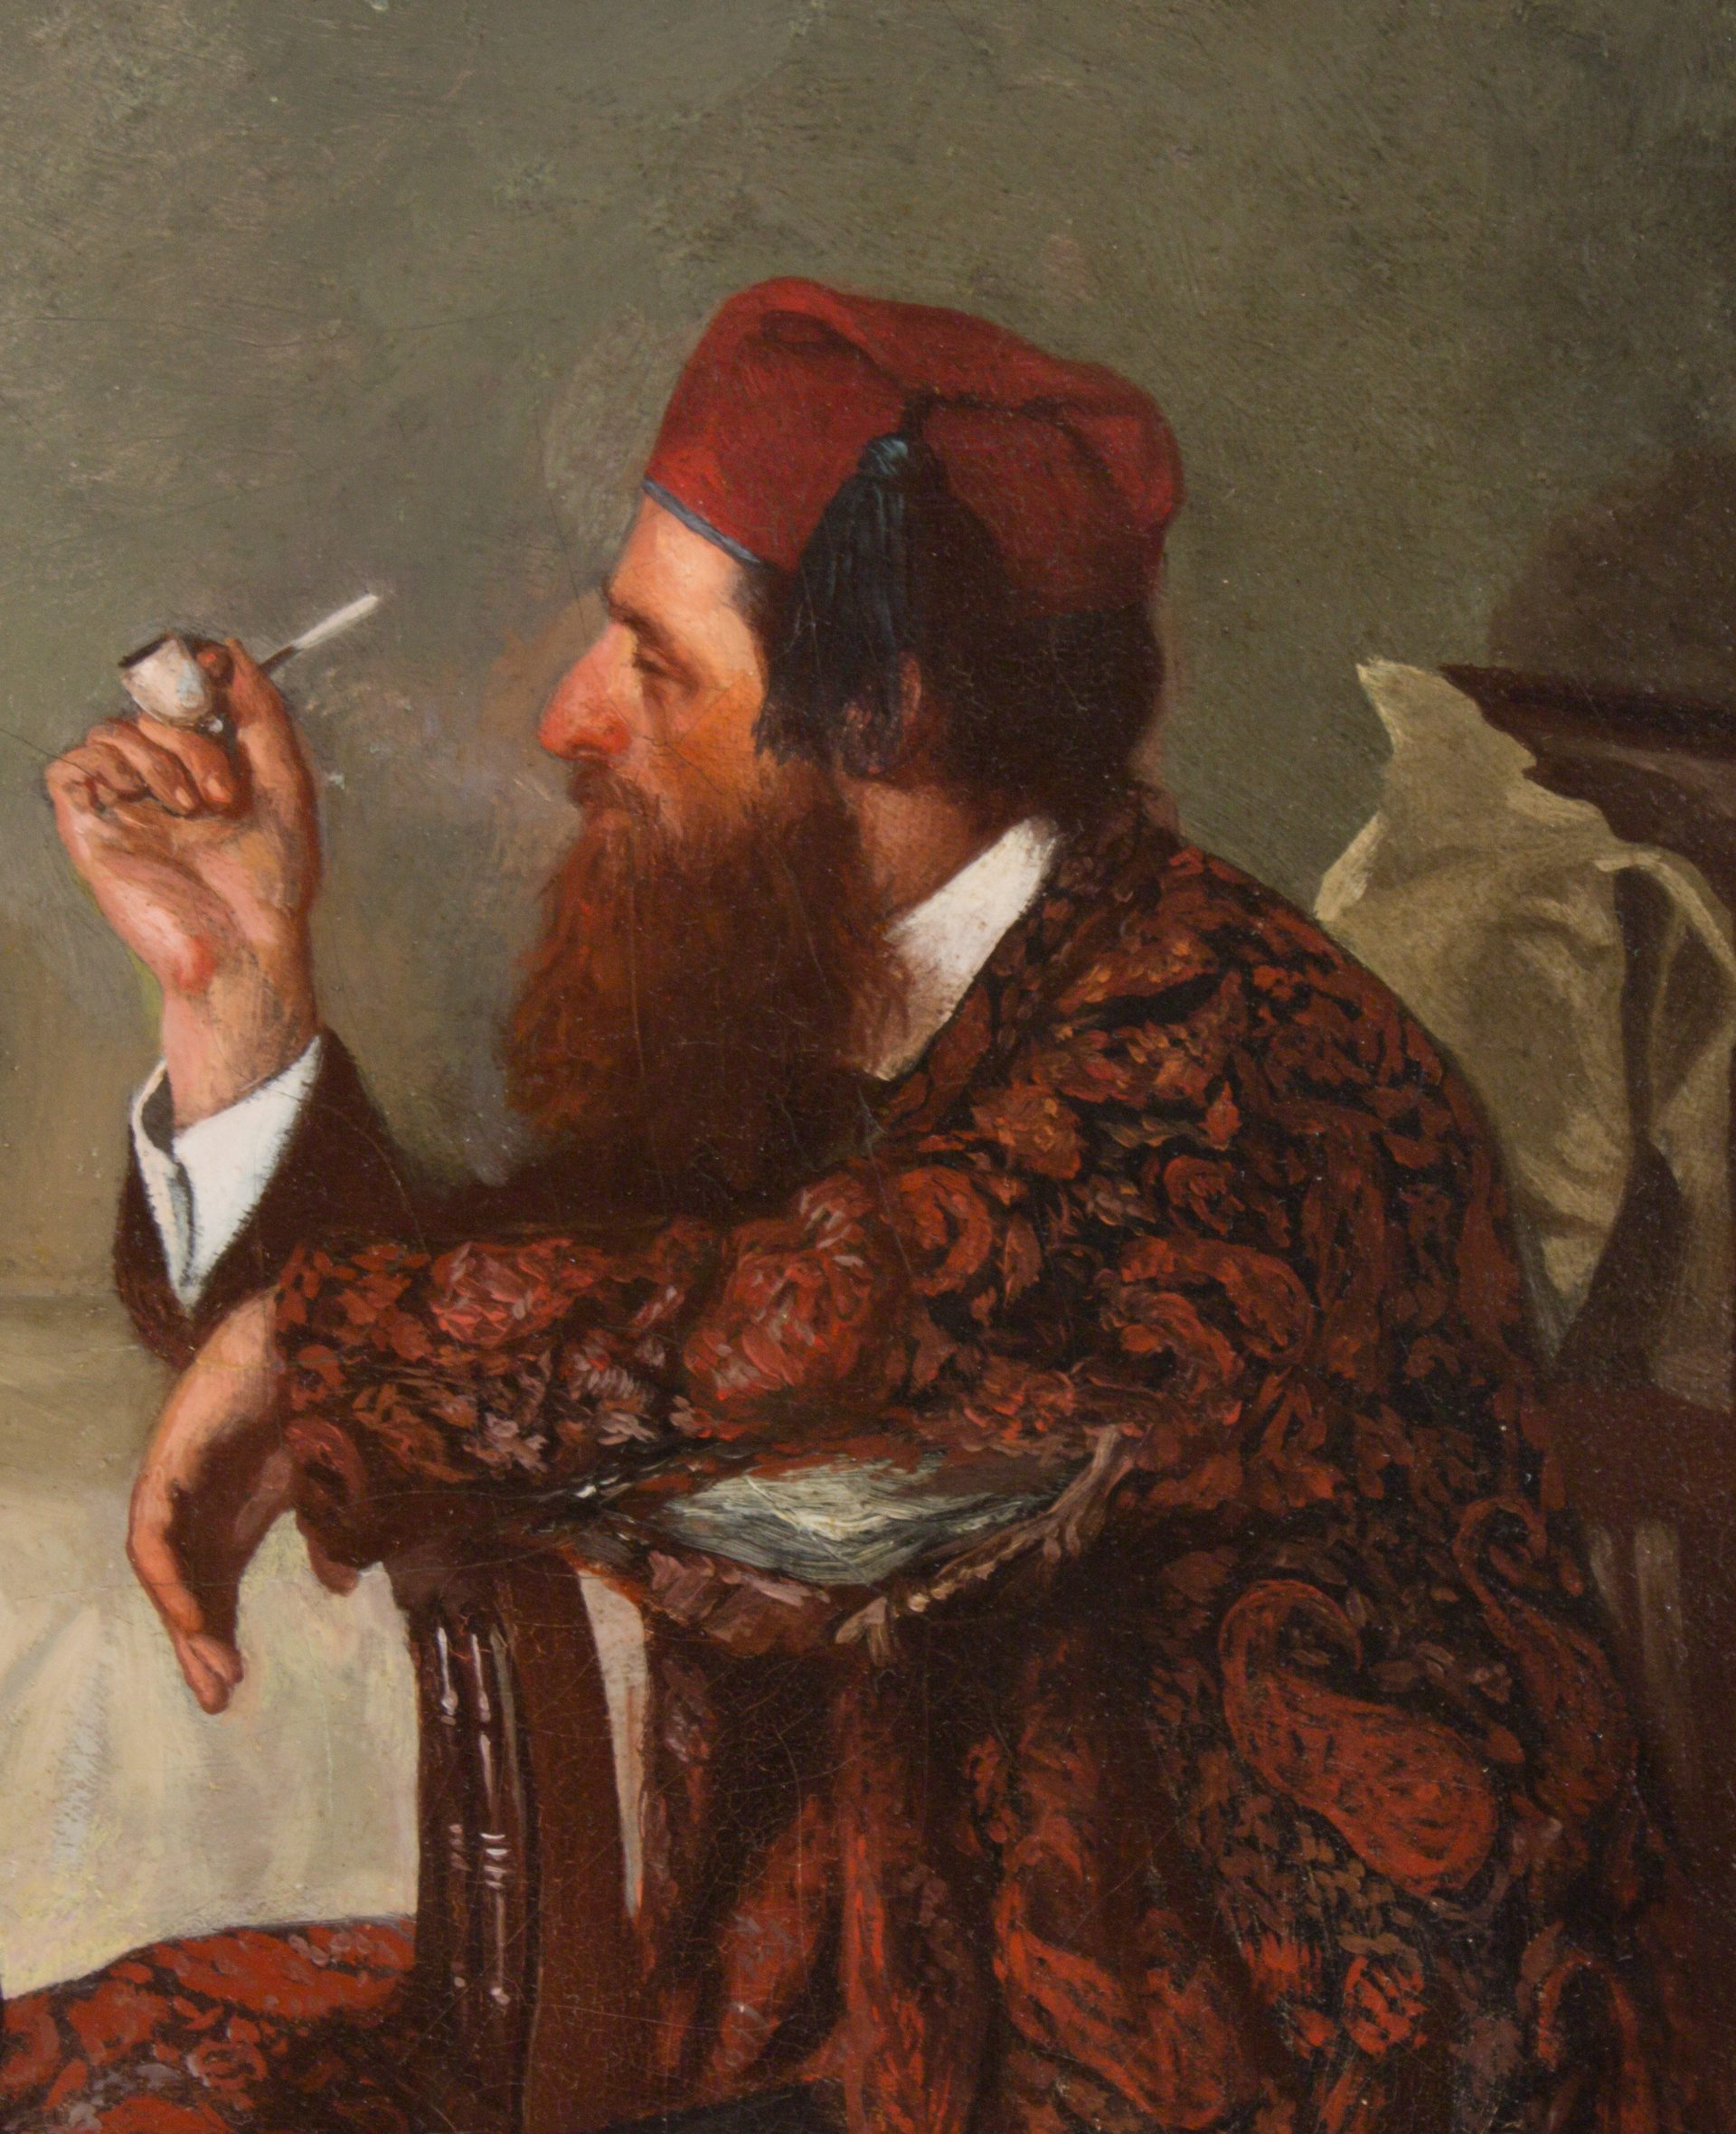 The Artist in His Studio DETAIL (Thomas Hovenden)